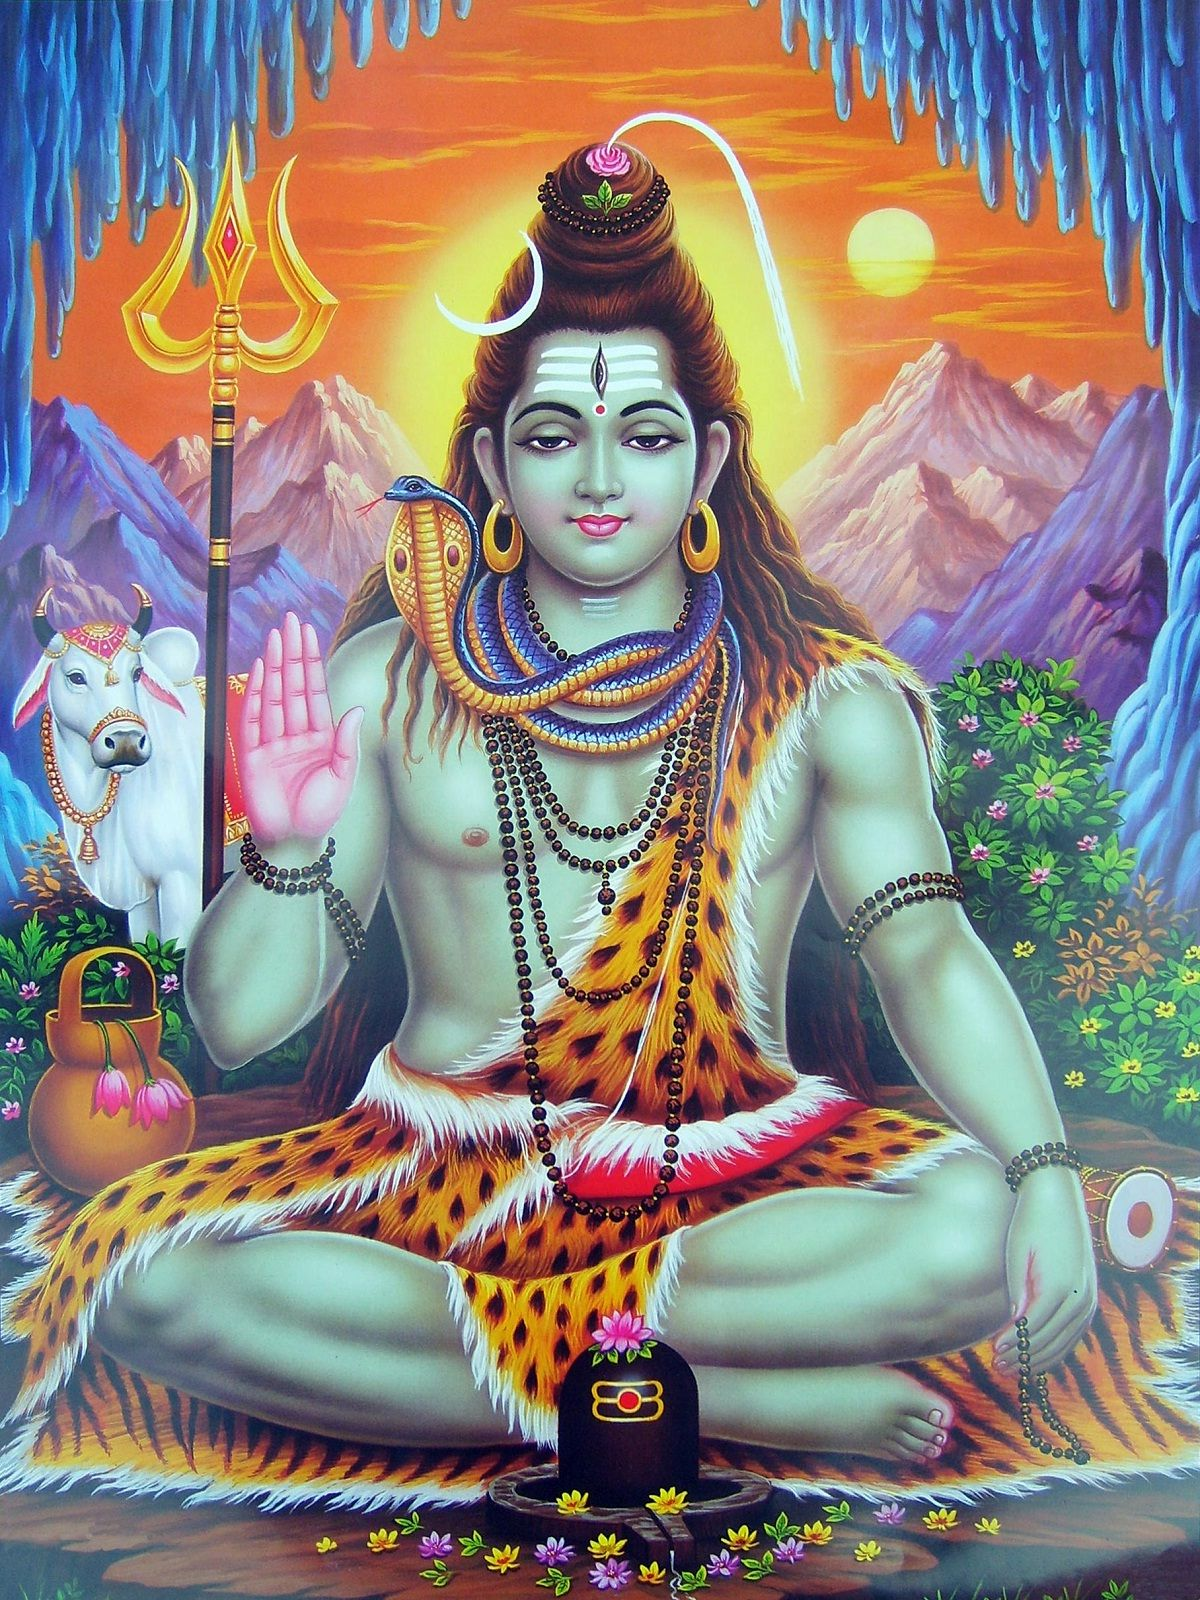 Popular Wallpaper Lord Shiv - ee5528932582b23d027925e0d2199499  You Should Have_32758.jpg